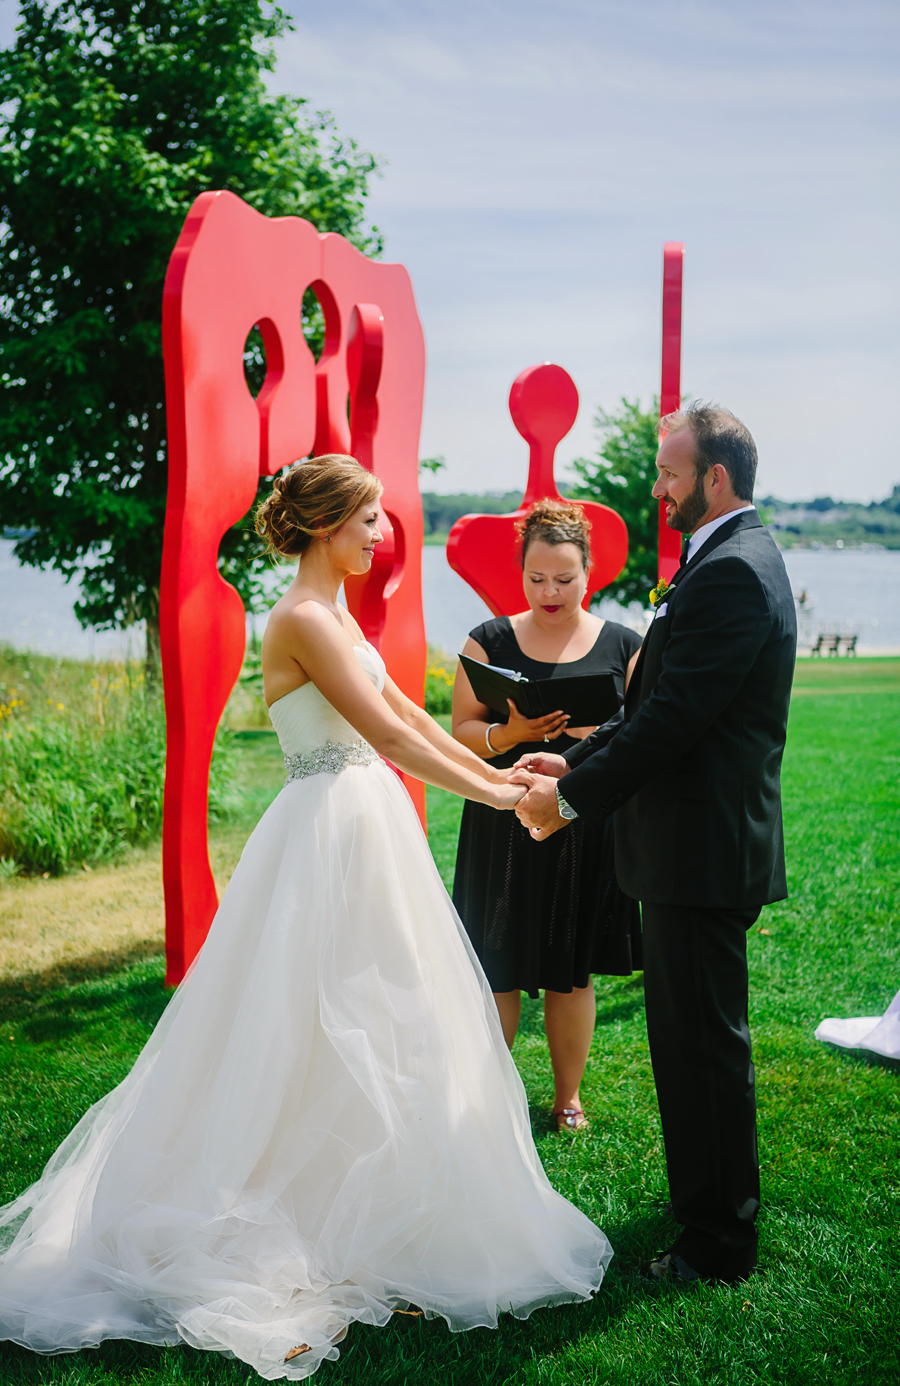 Saugatuck Arts Center Wedding104.jpg